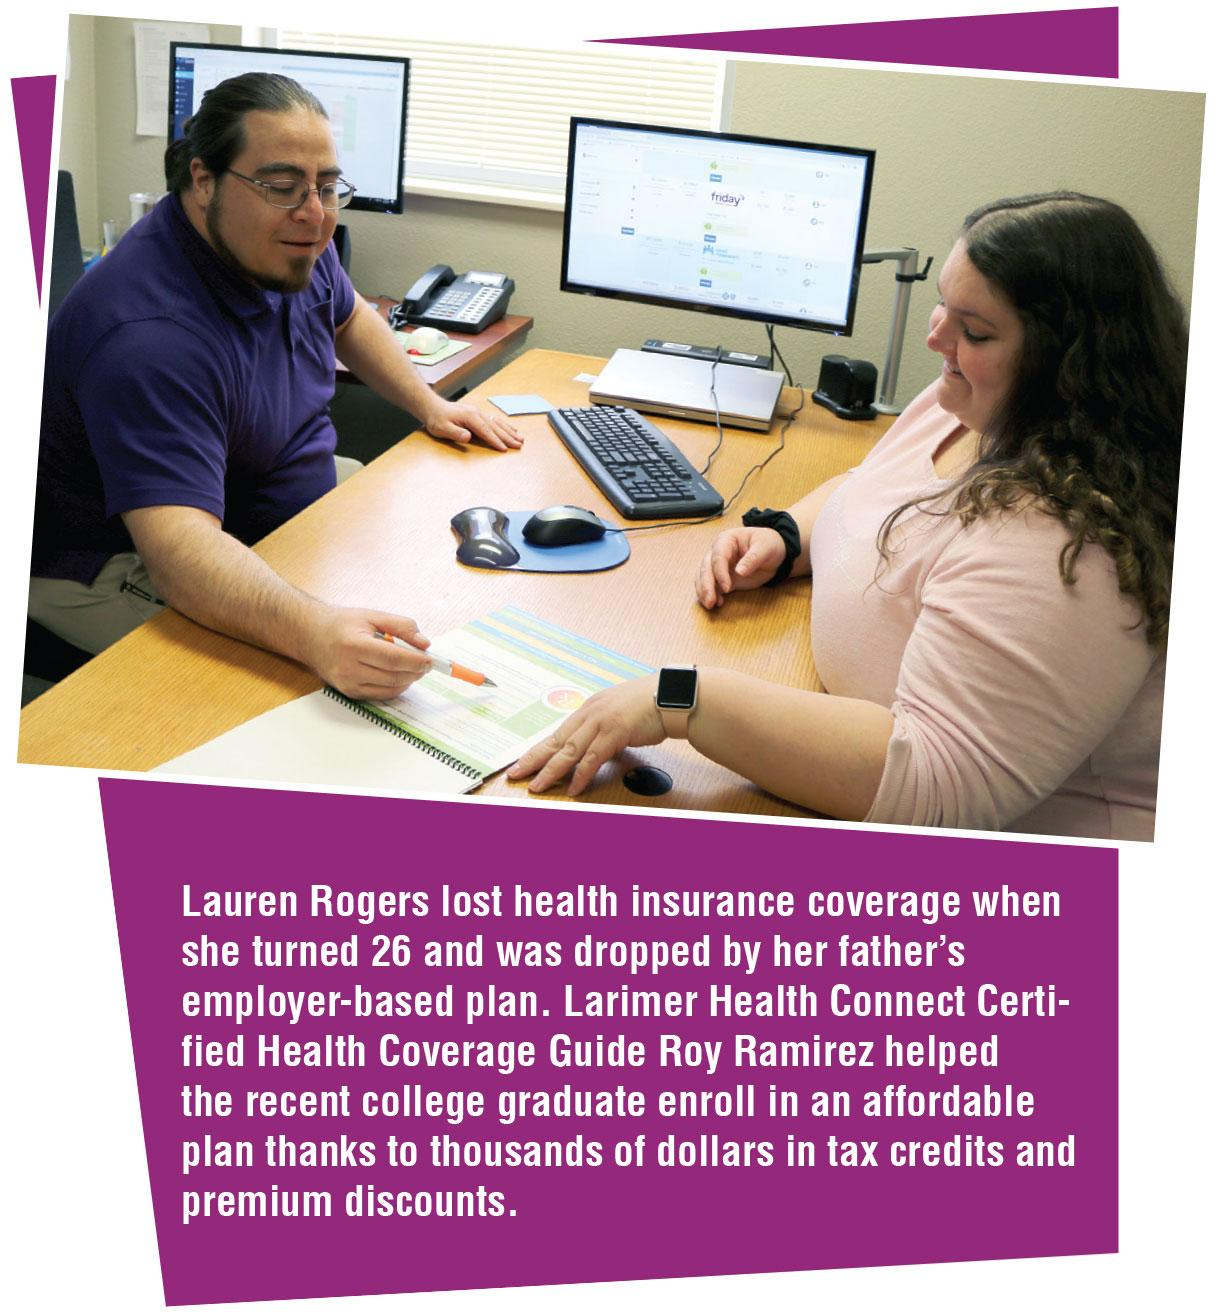 Health Coverage Specialist Roy Ramirez works with Lauren Rogers to find affordable health insurance.